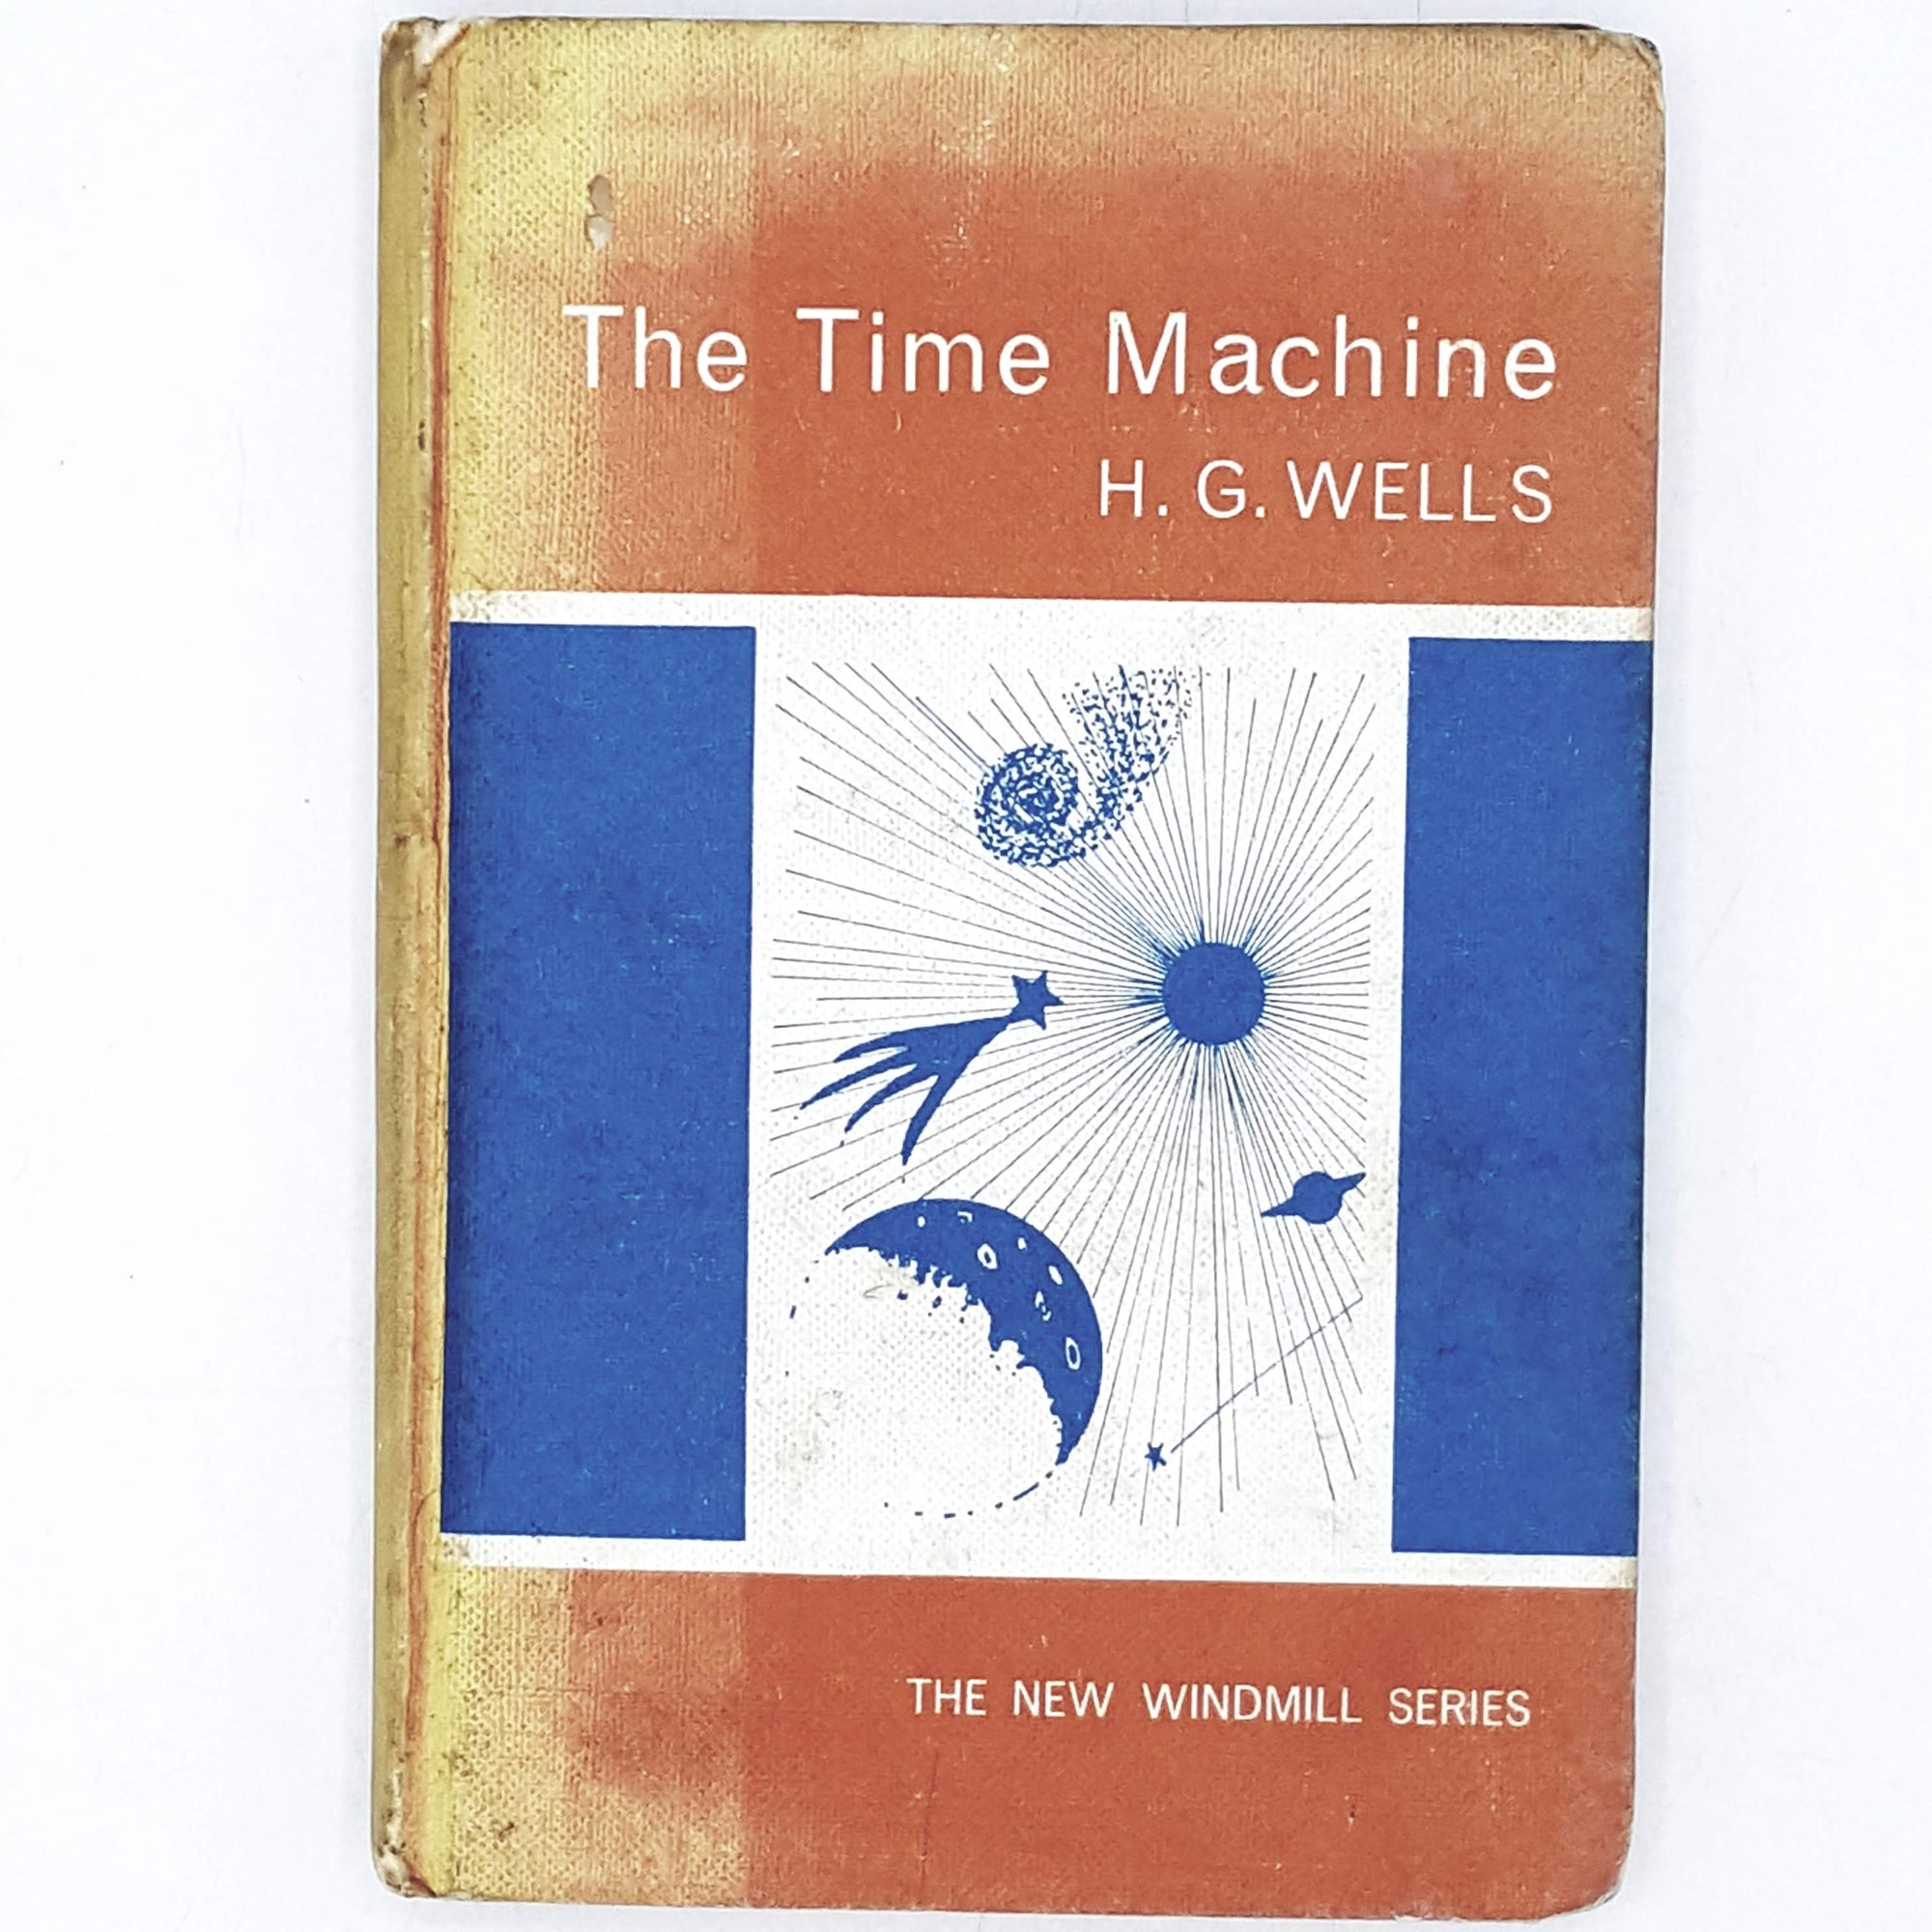 H. G. Wells's The Time Machine 1964